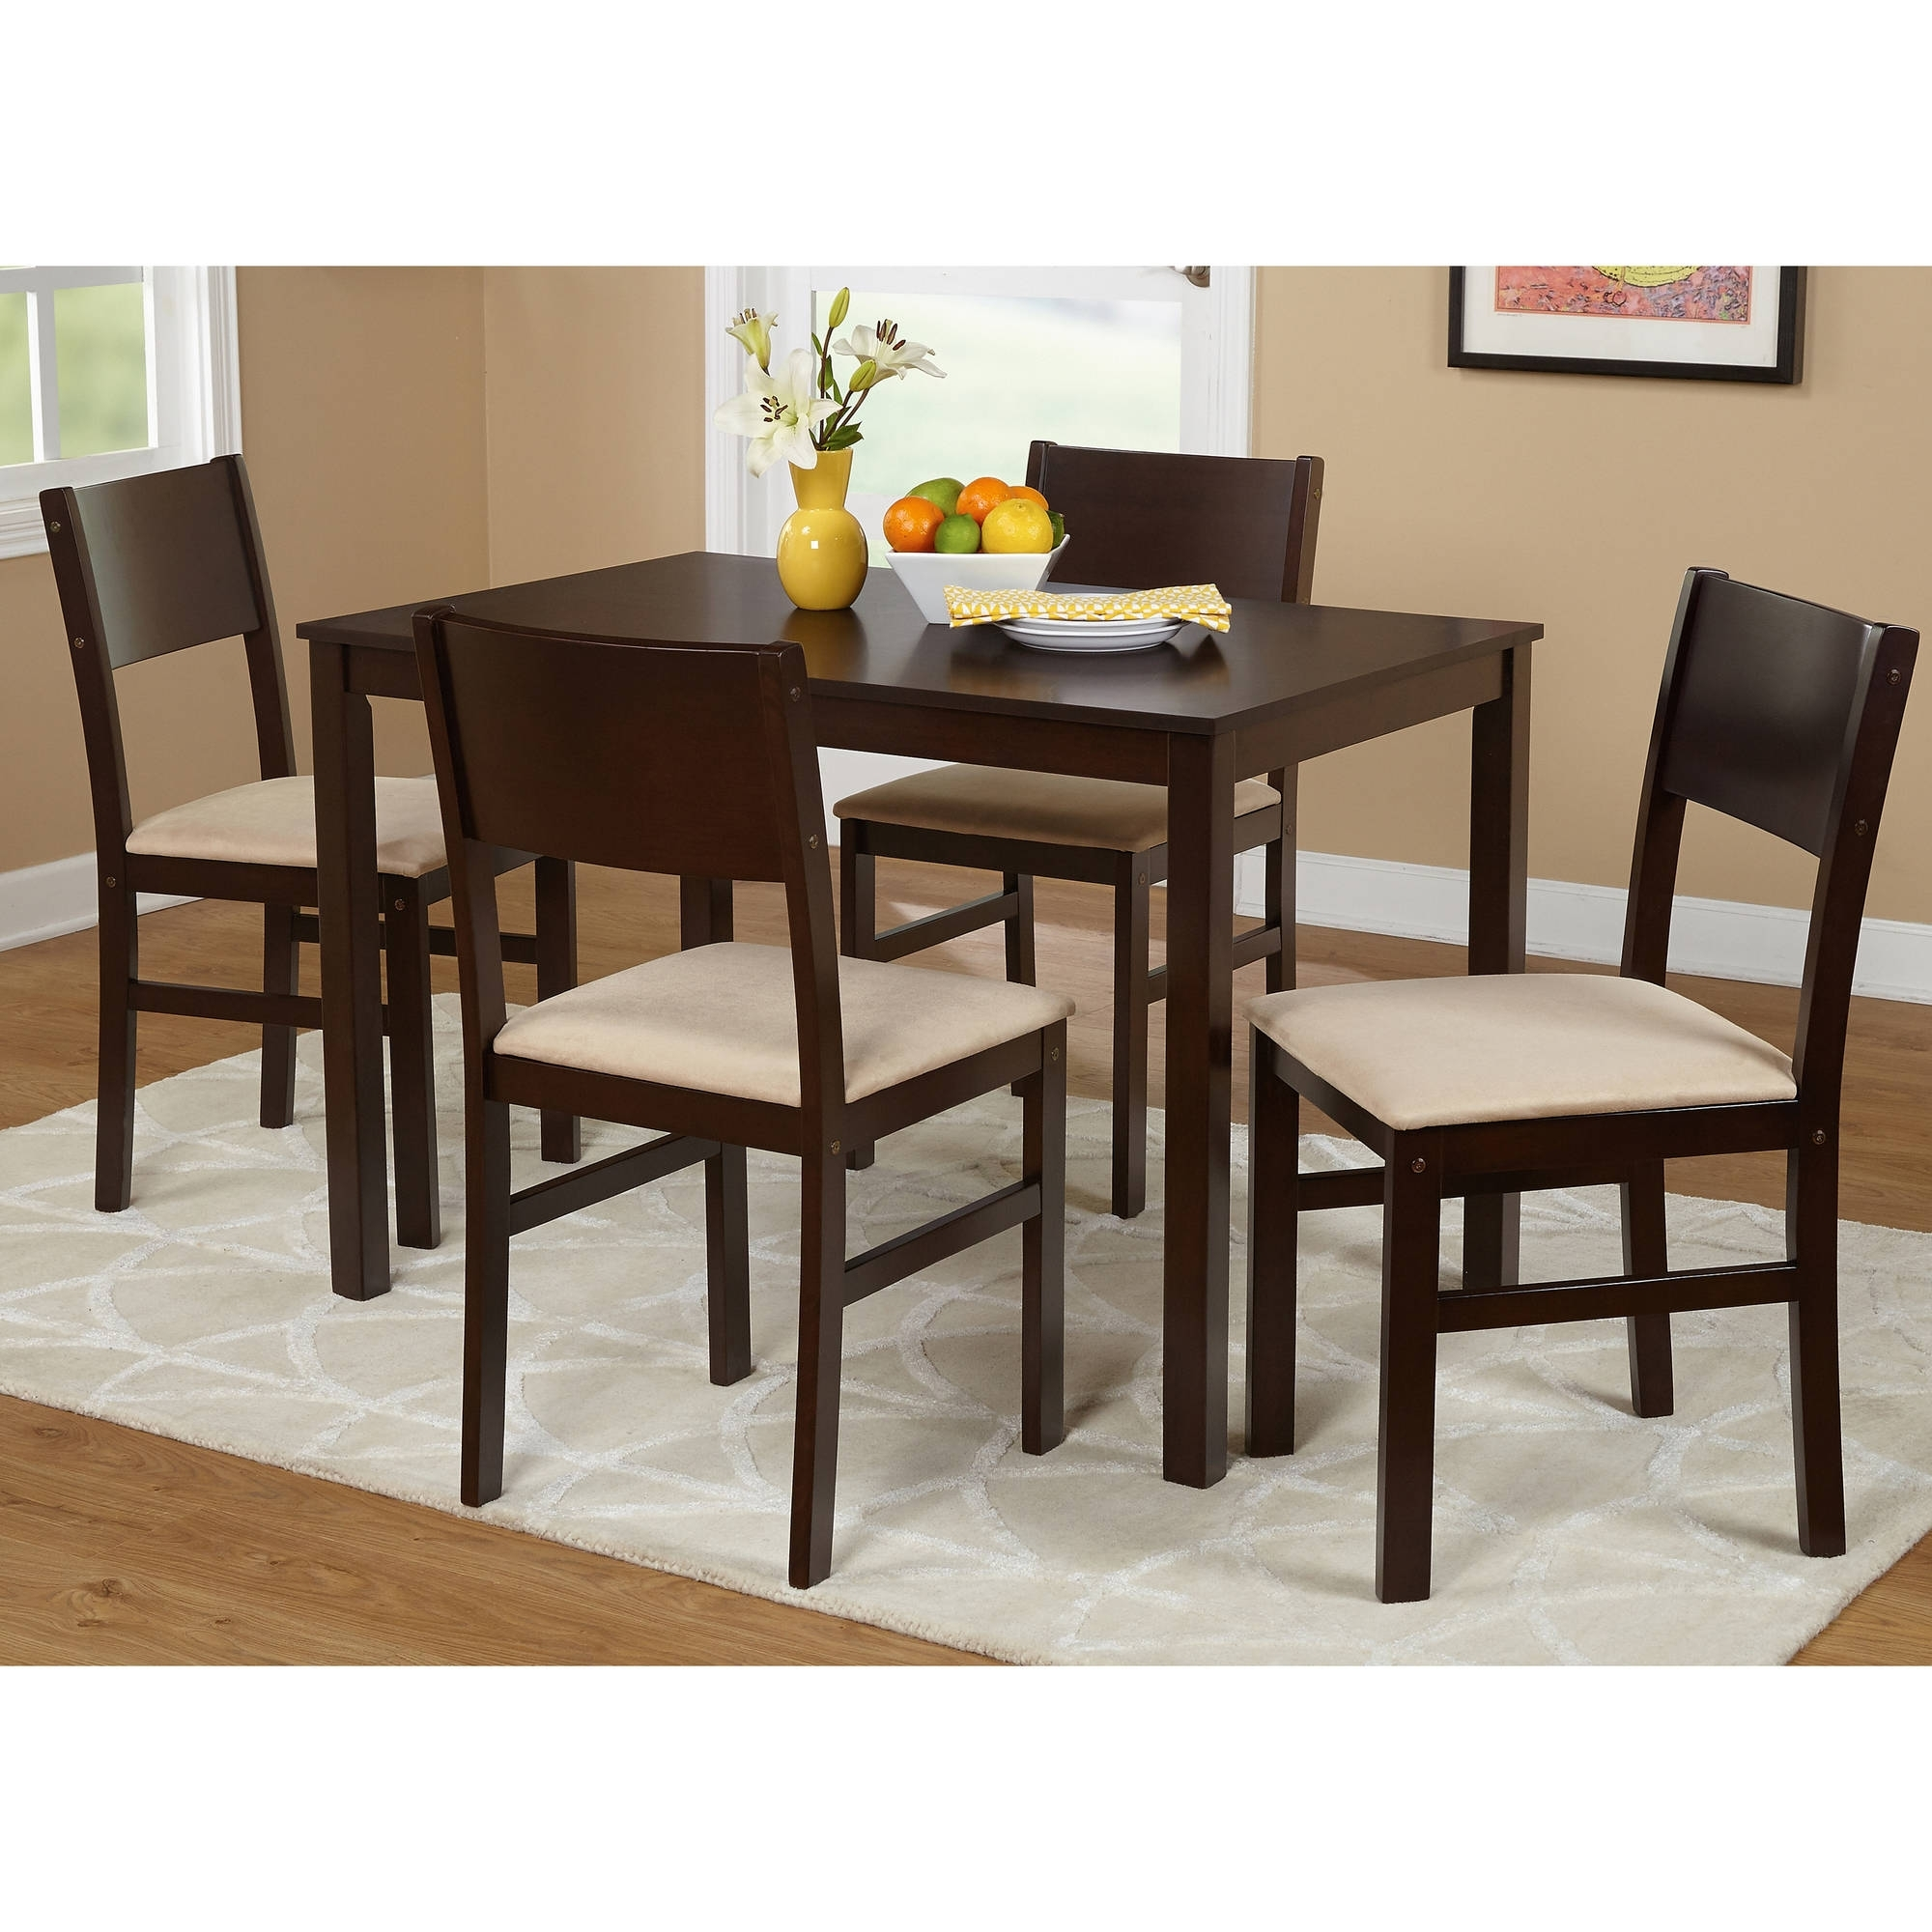 Well Known Lucca 5 Piece Dining Set, Multiple Colors – Walmart Regarding Dining Sets (View 2 of 25)